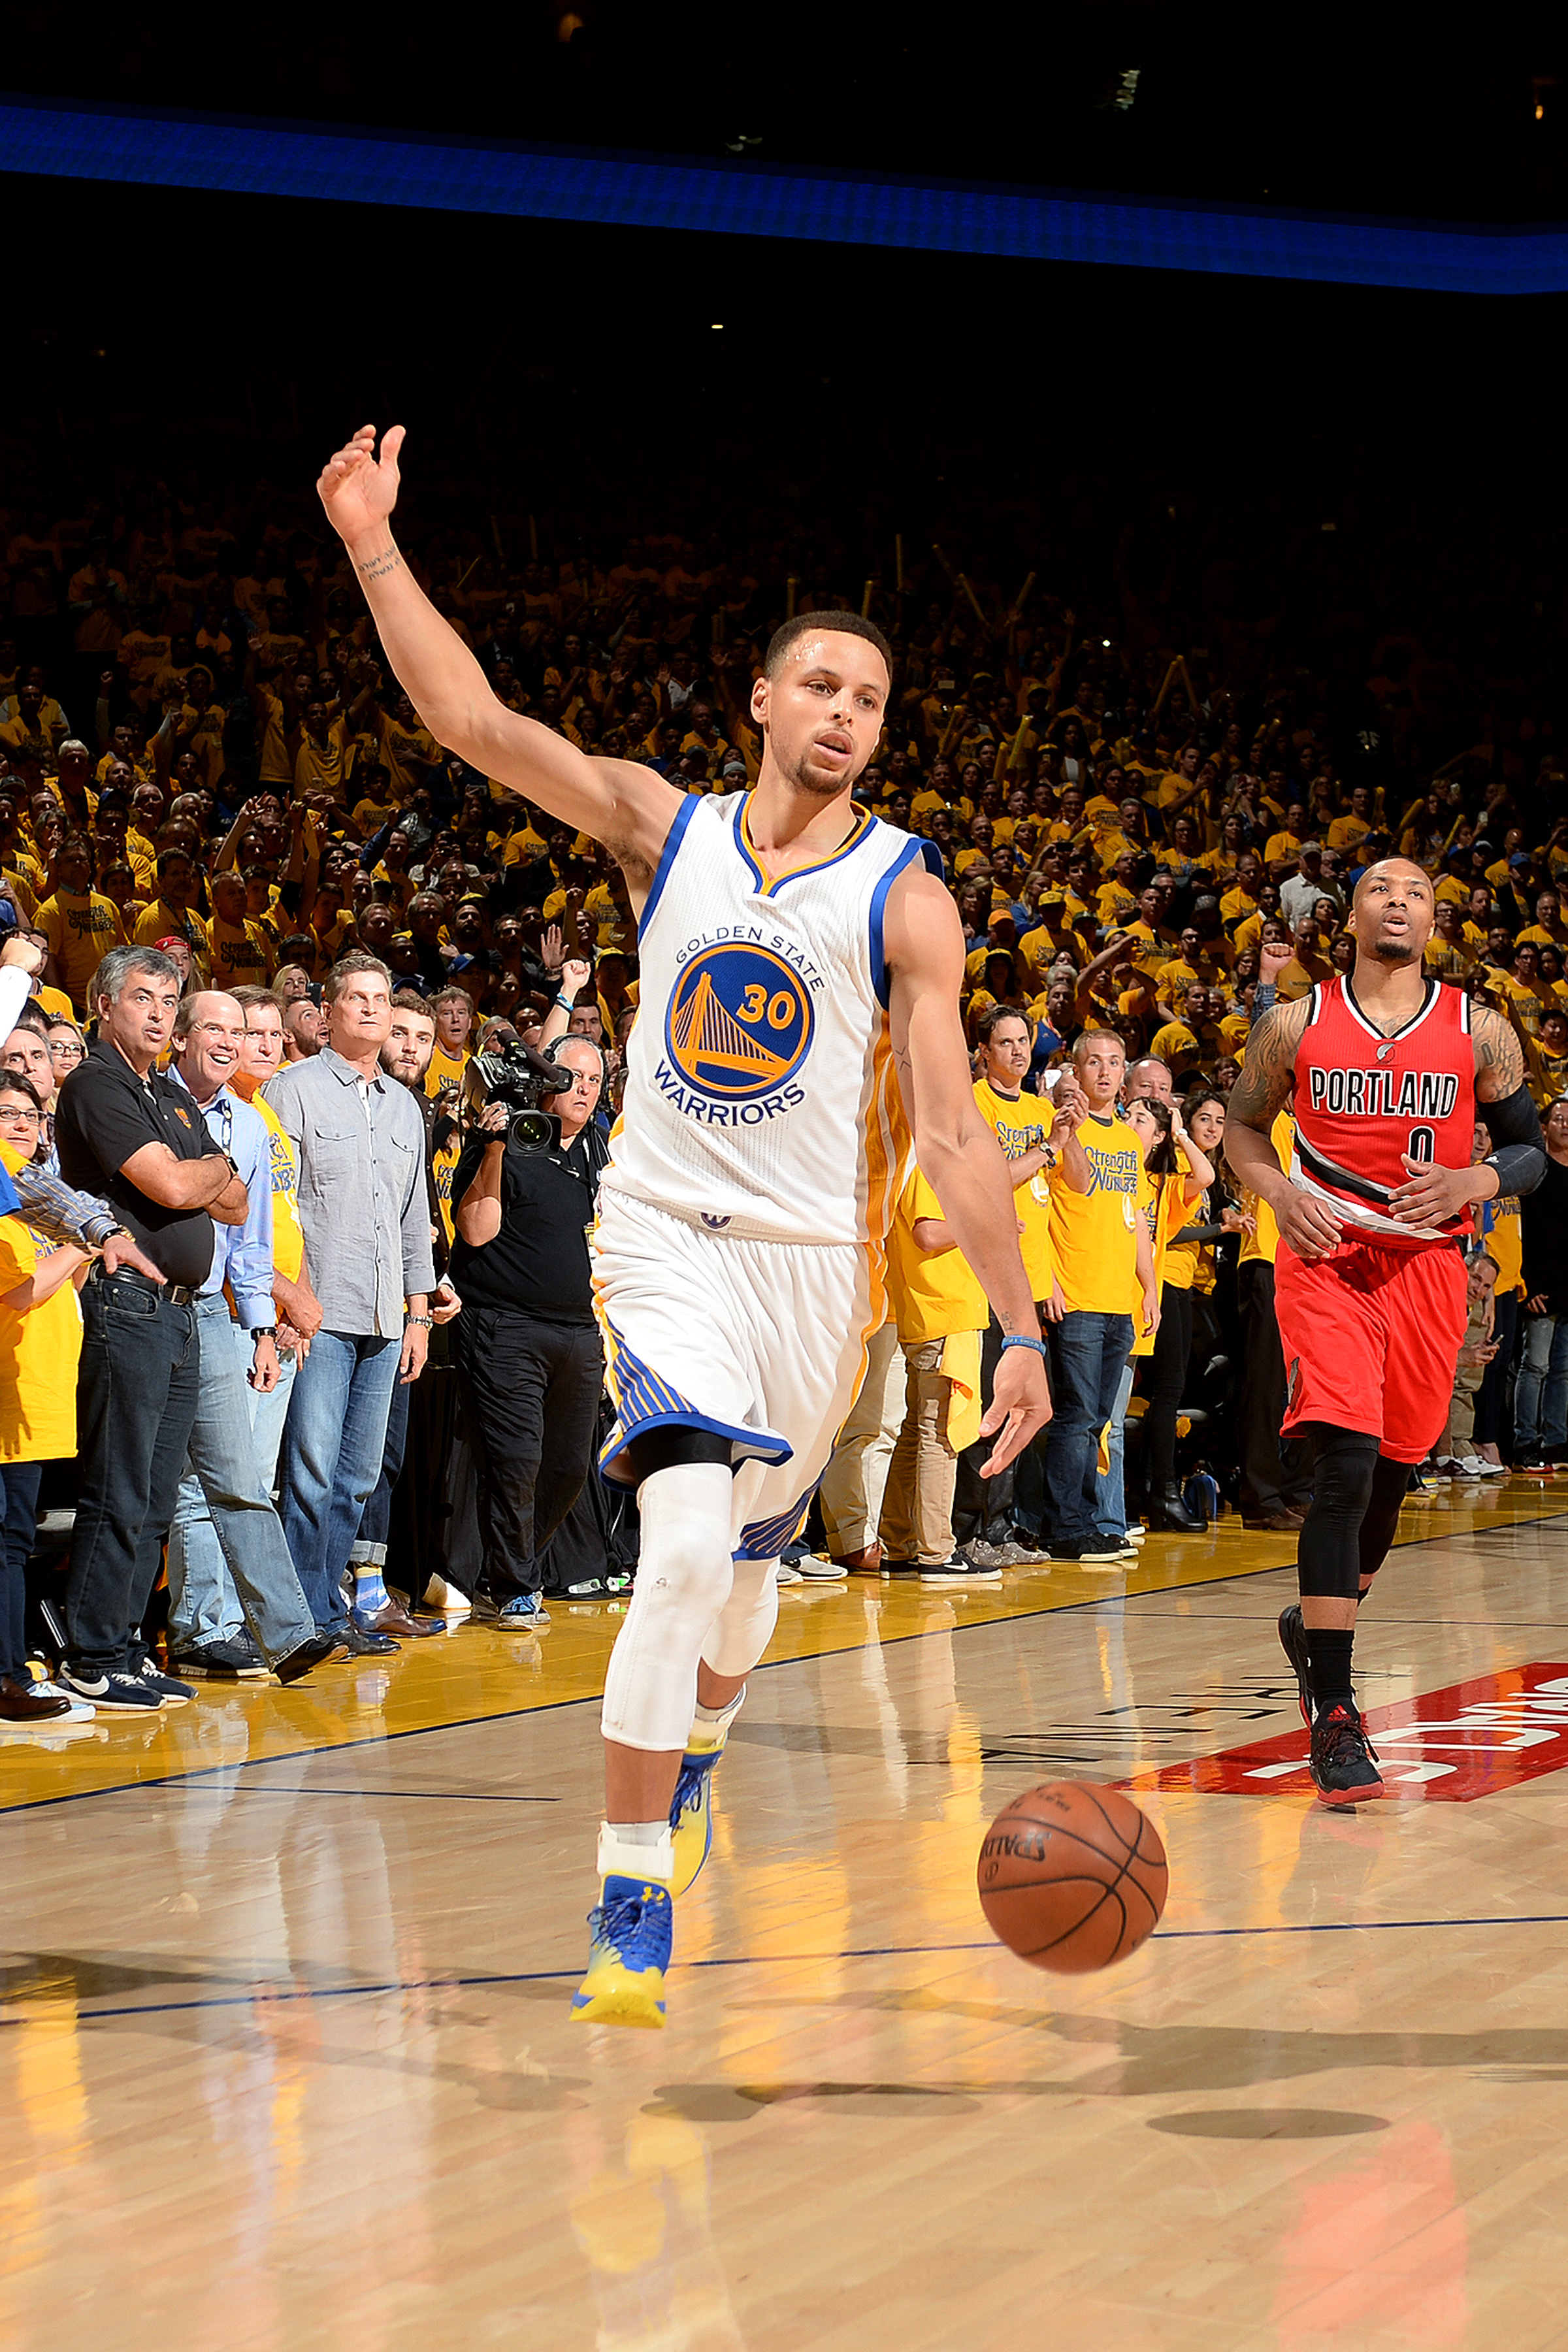 OAKLAND, CA - MAY 11: Stephen Curry #30 of the Golden State Warriors handles the ball during the game against the Portland Trail Blazers in Game Five of the Western Conference Semifinals during the 2016 NBA Playoffs on May 11, 2016 at ORACLE Arena in Oakl